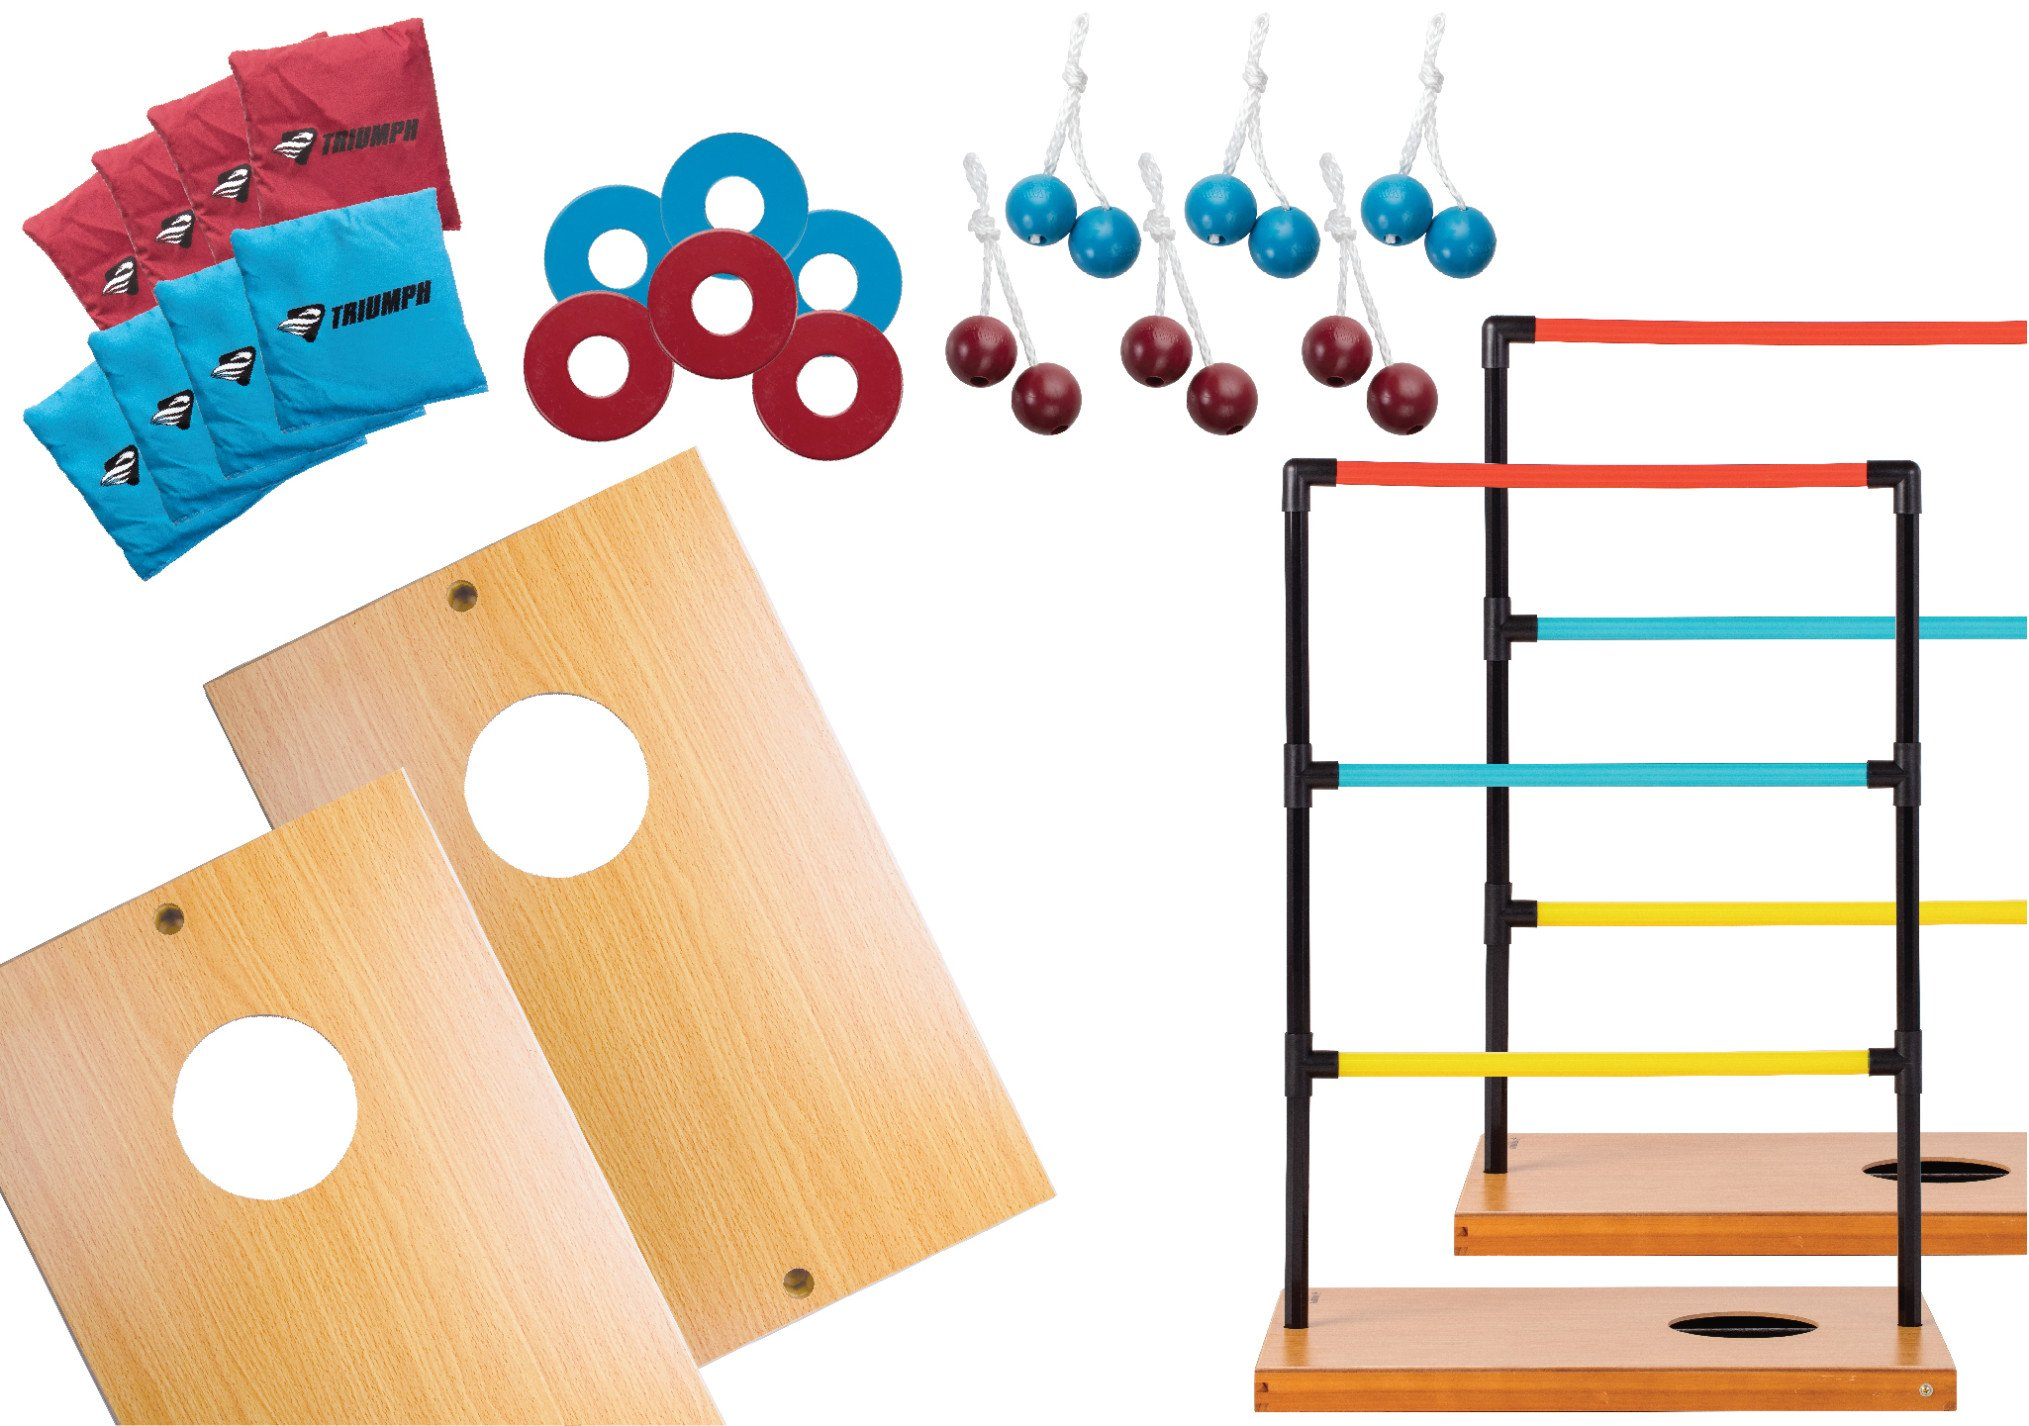 Triumph Sports Trio Toss Deluxe - 3-in-1 Ladder Toss, Washer Toss and Cornhole Game by Triumph Sports